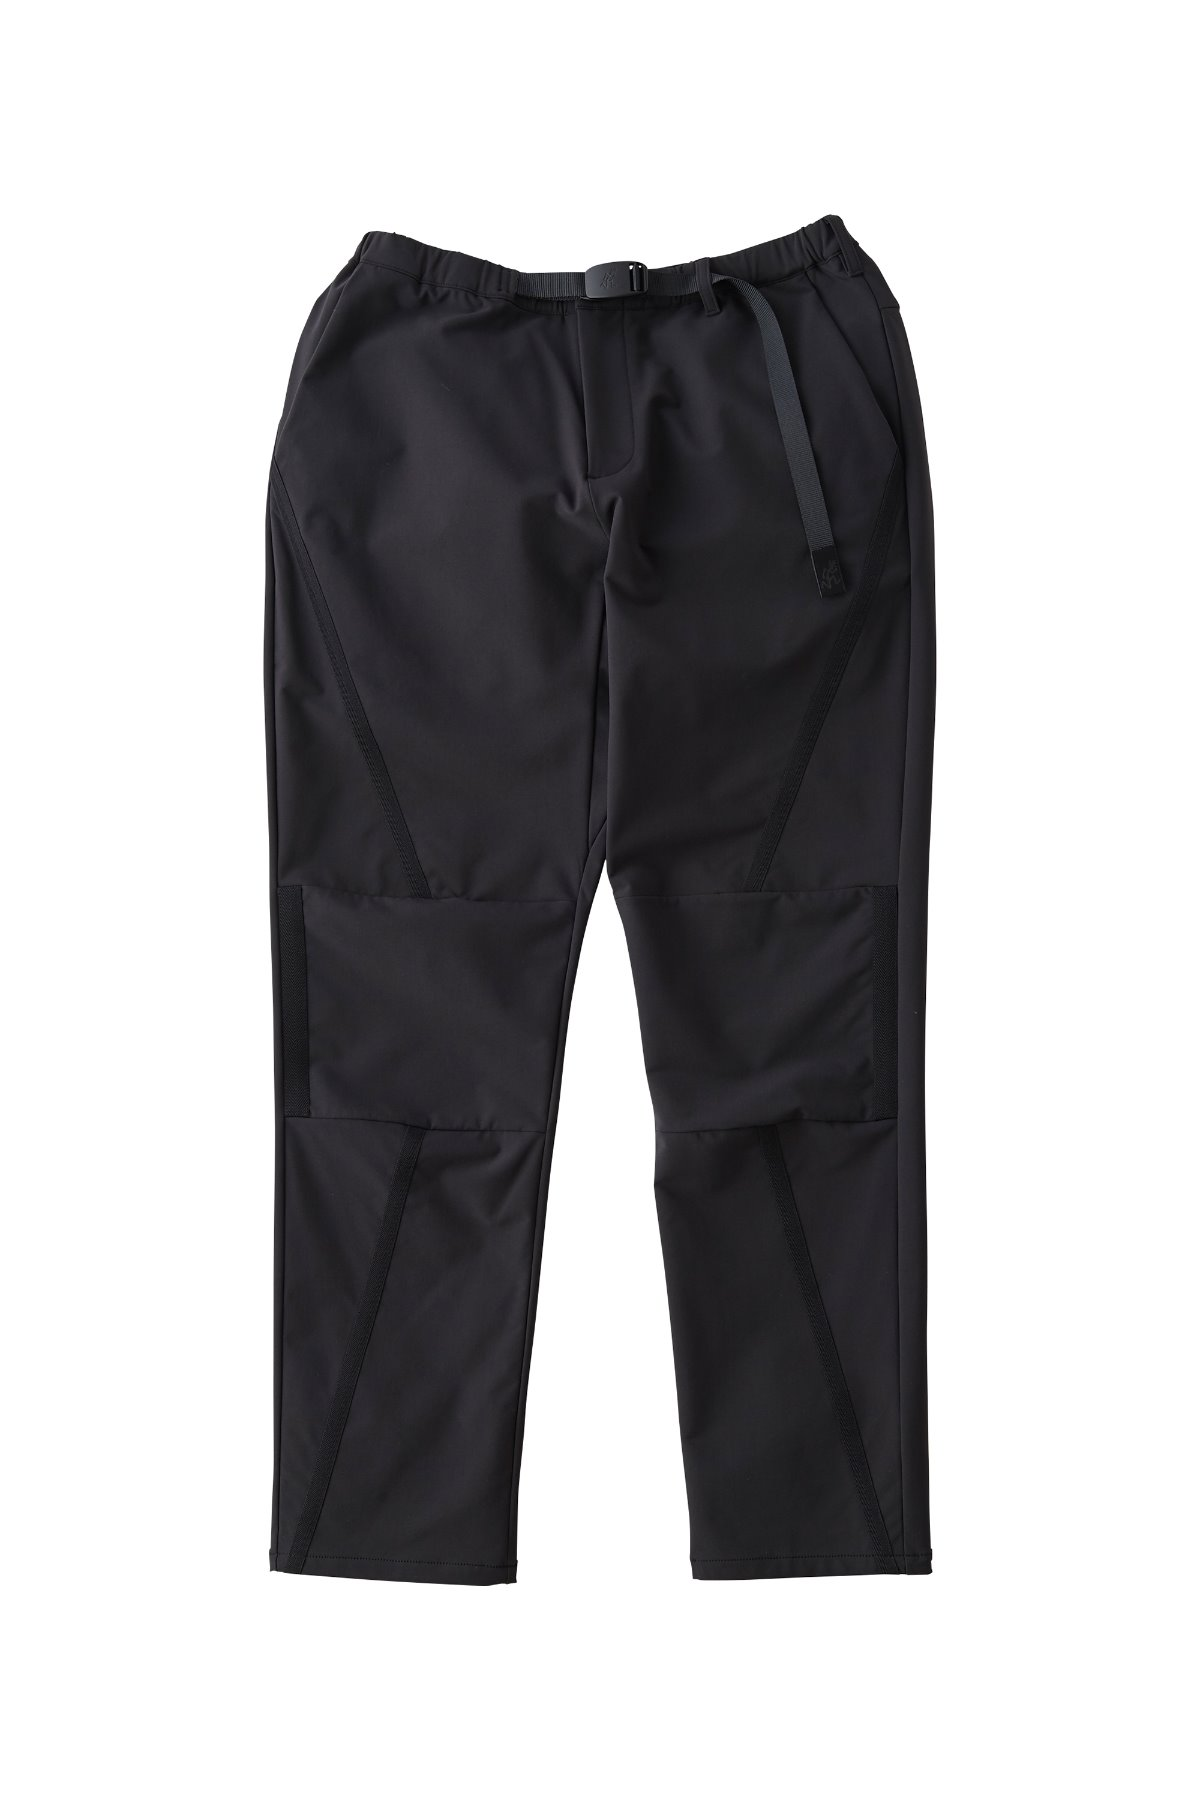 STORMFLEECE SWITCH PANTS BLACK